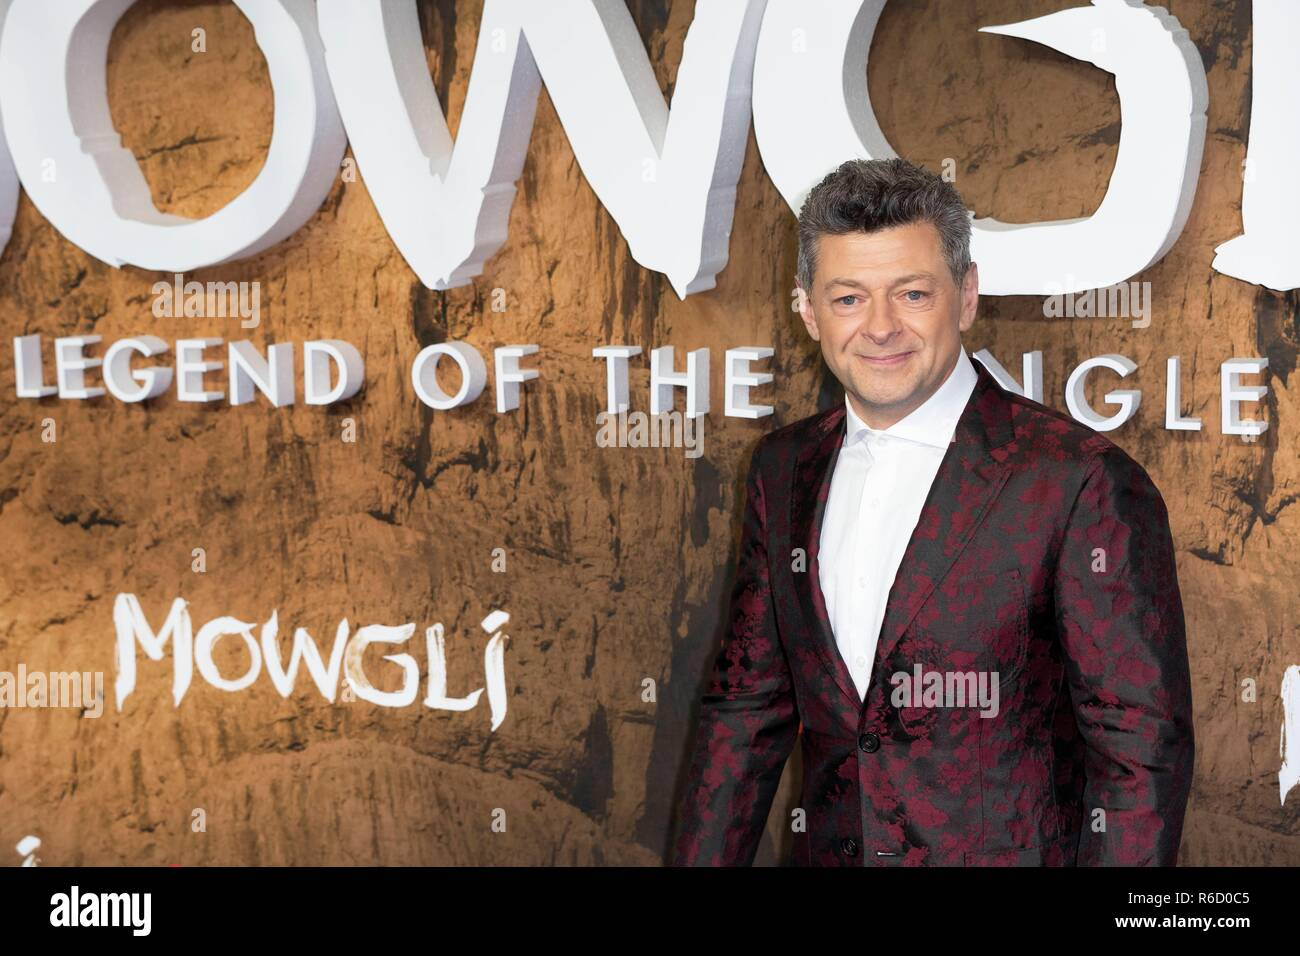 Andy Serkis attends Special Screening of MOWGLI Legend of The Jungle. London, UK. 04/12/2018 | usage worldwide - Stock Image